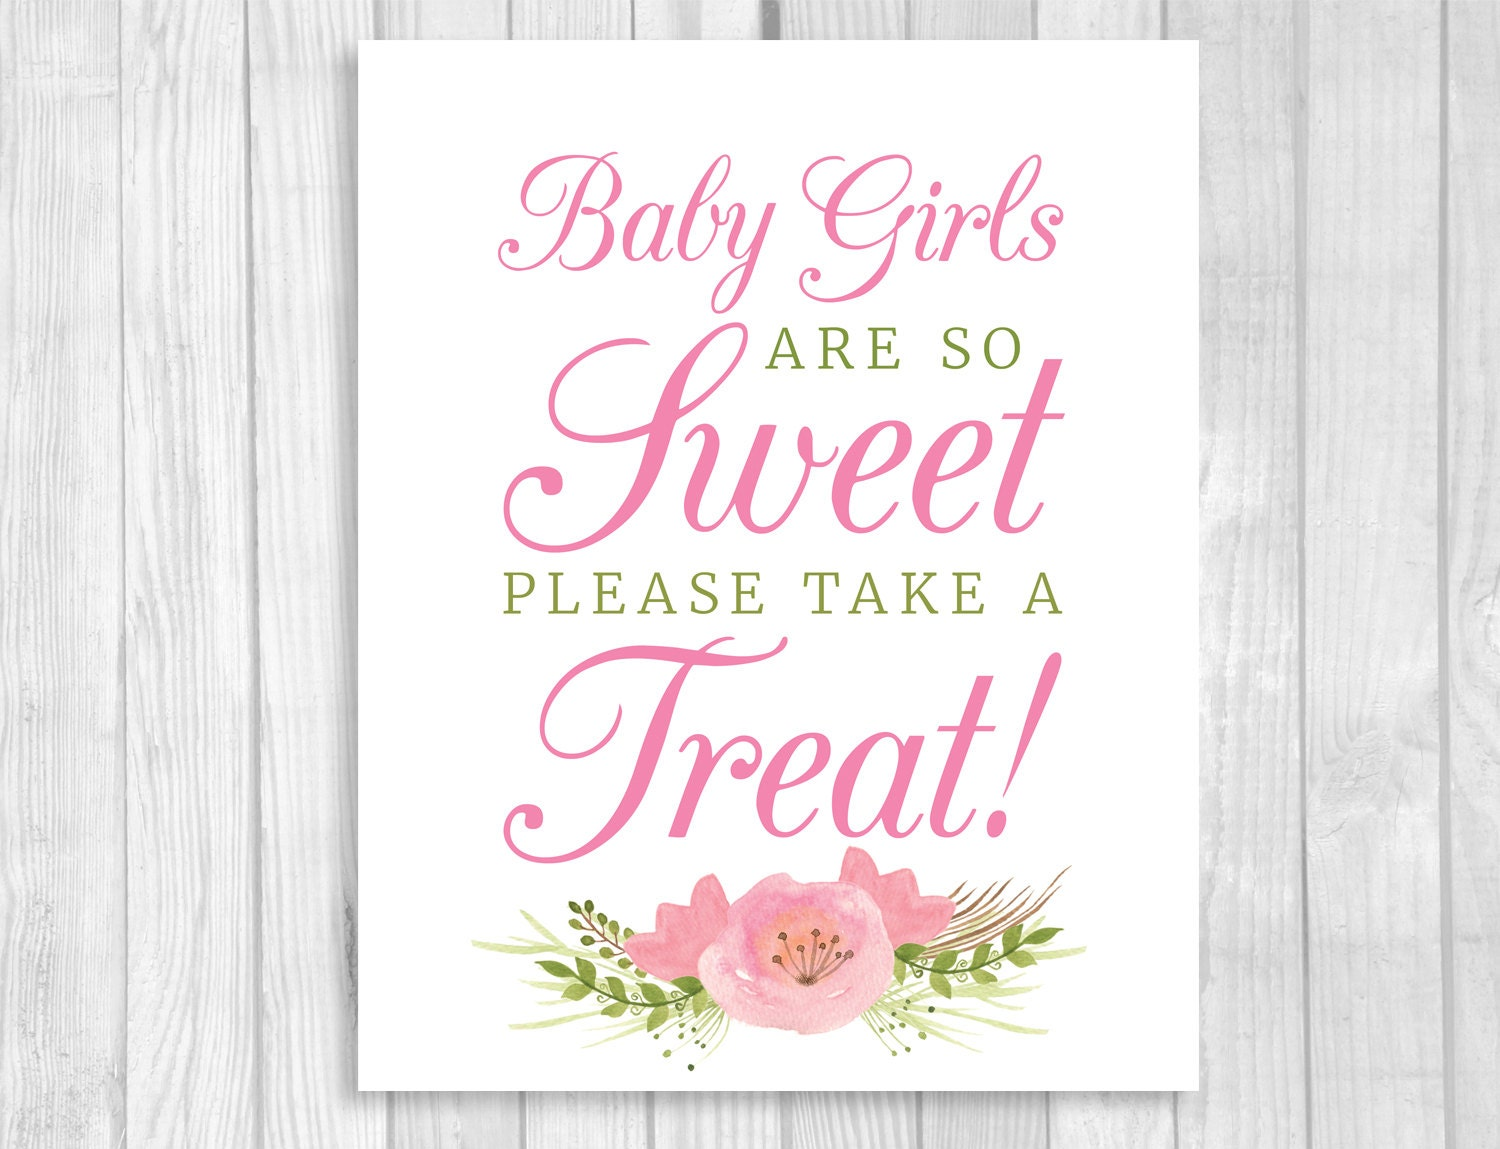 Baby Girls Are So Sweet Please Take A Treat 5x7 8x10 Etsy